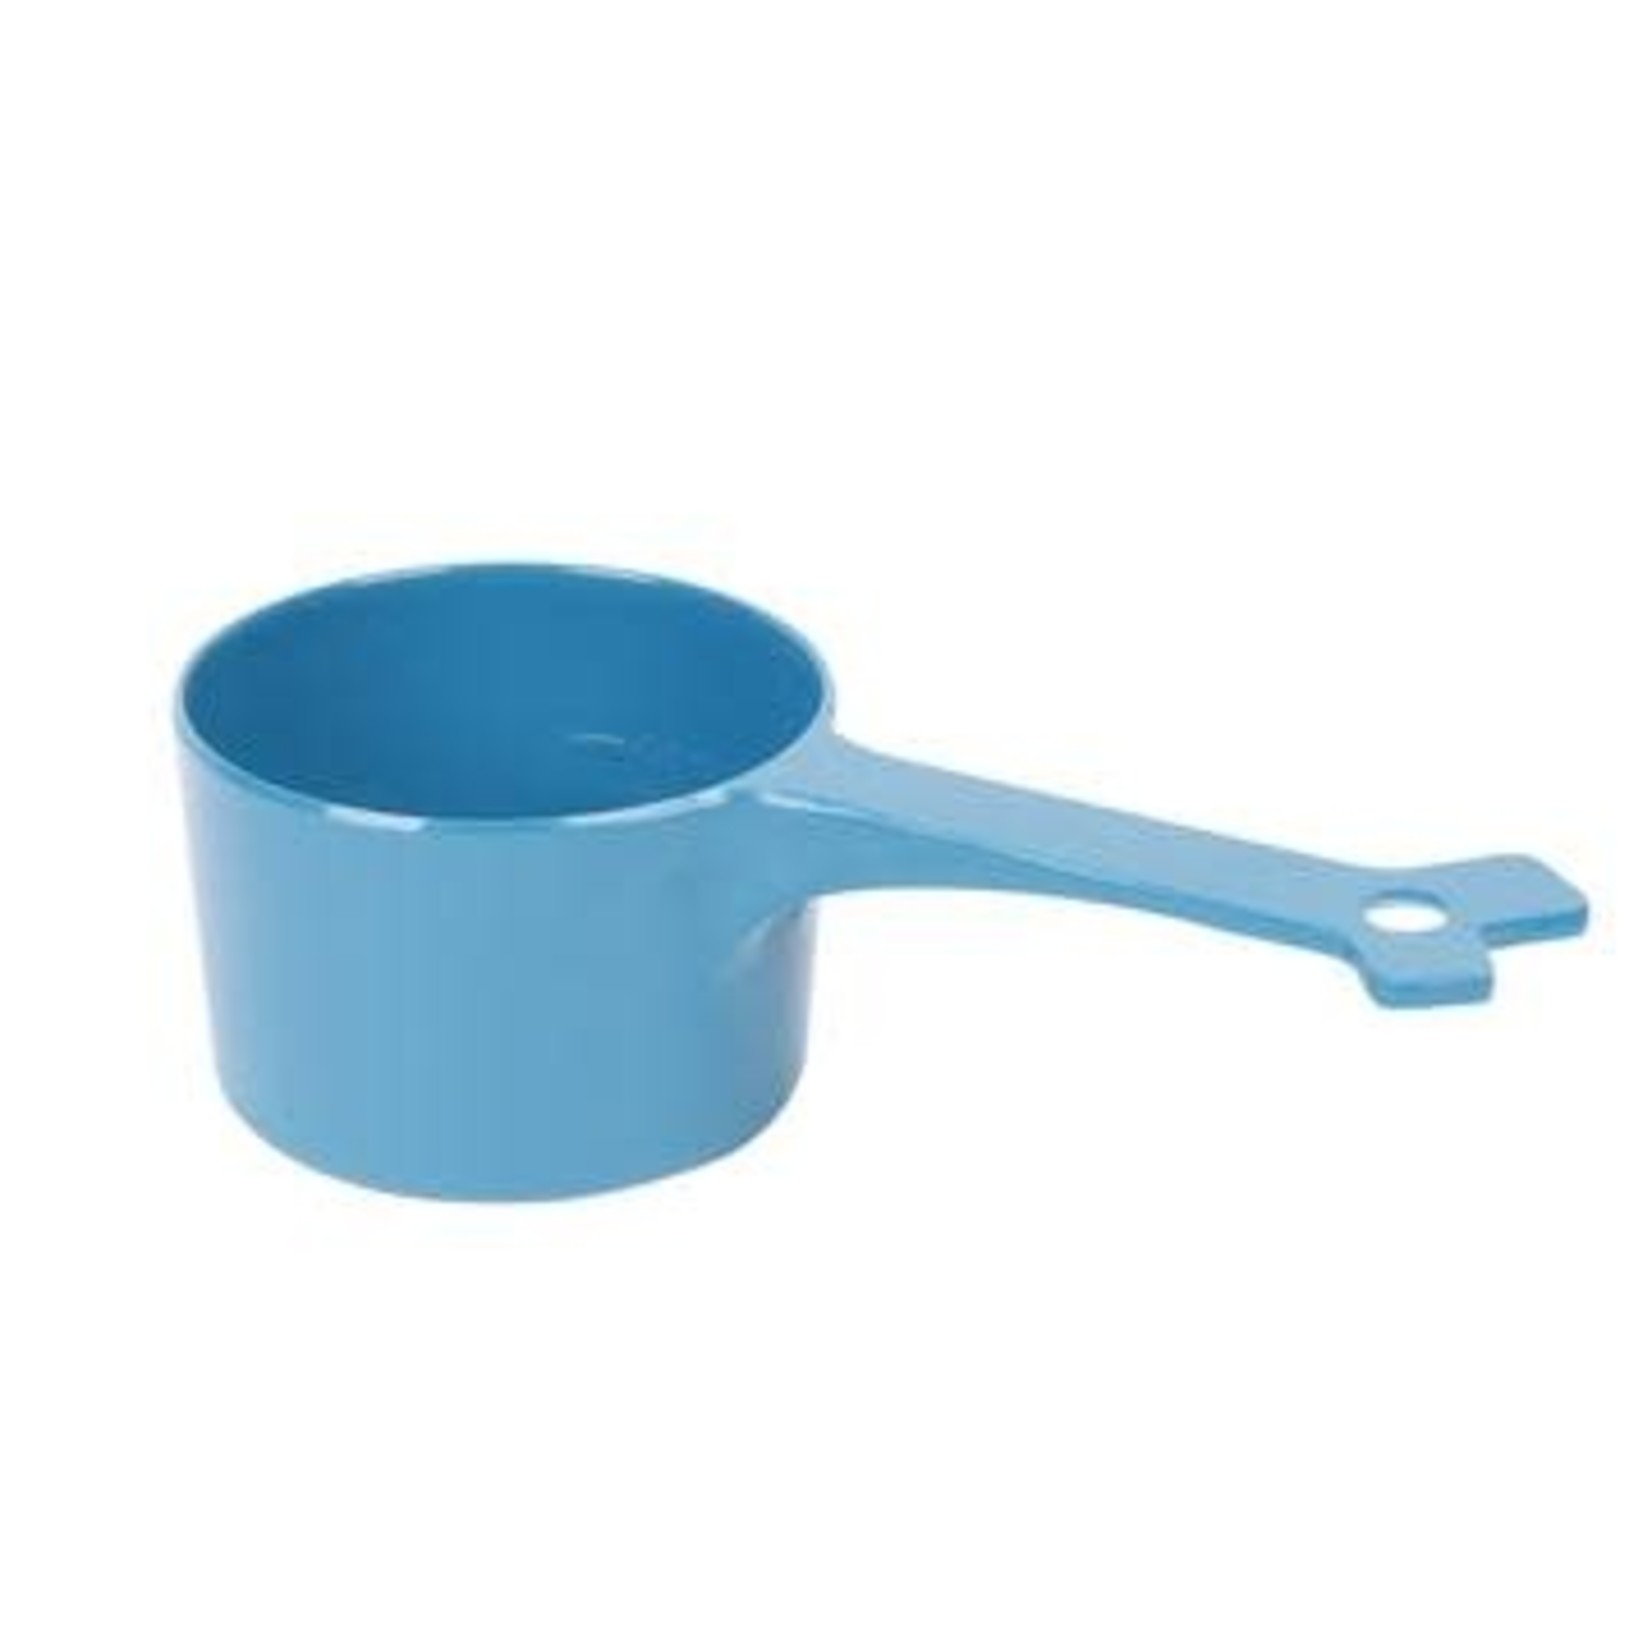 Messy Mutts Melamine Food Scoops (1 cup capacity)